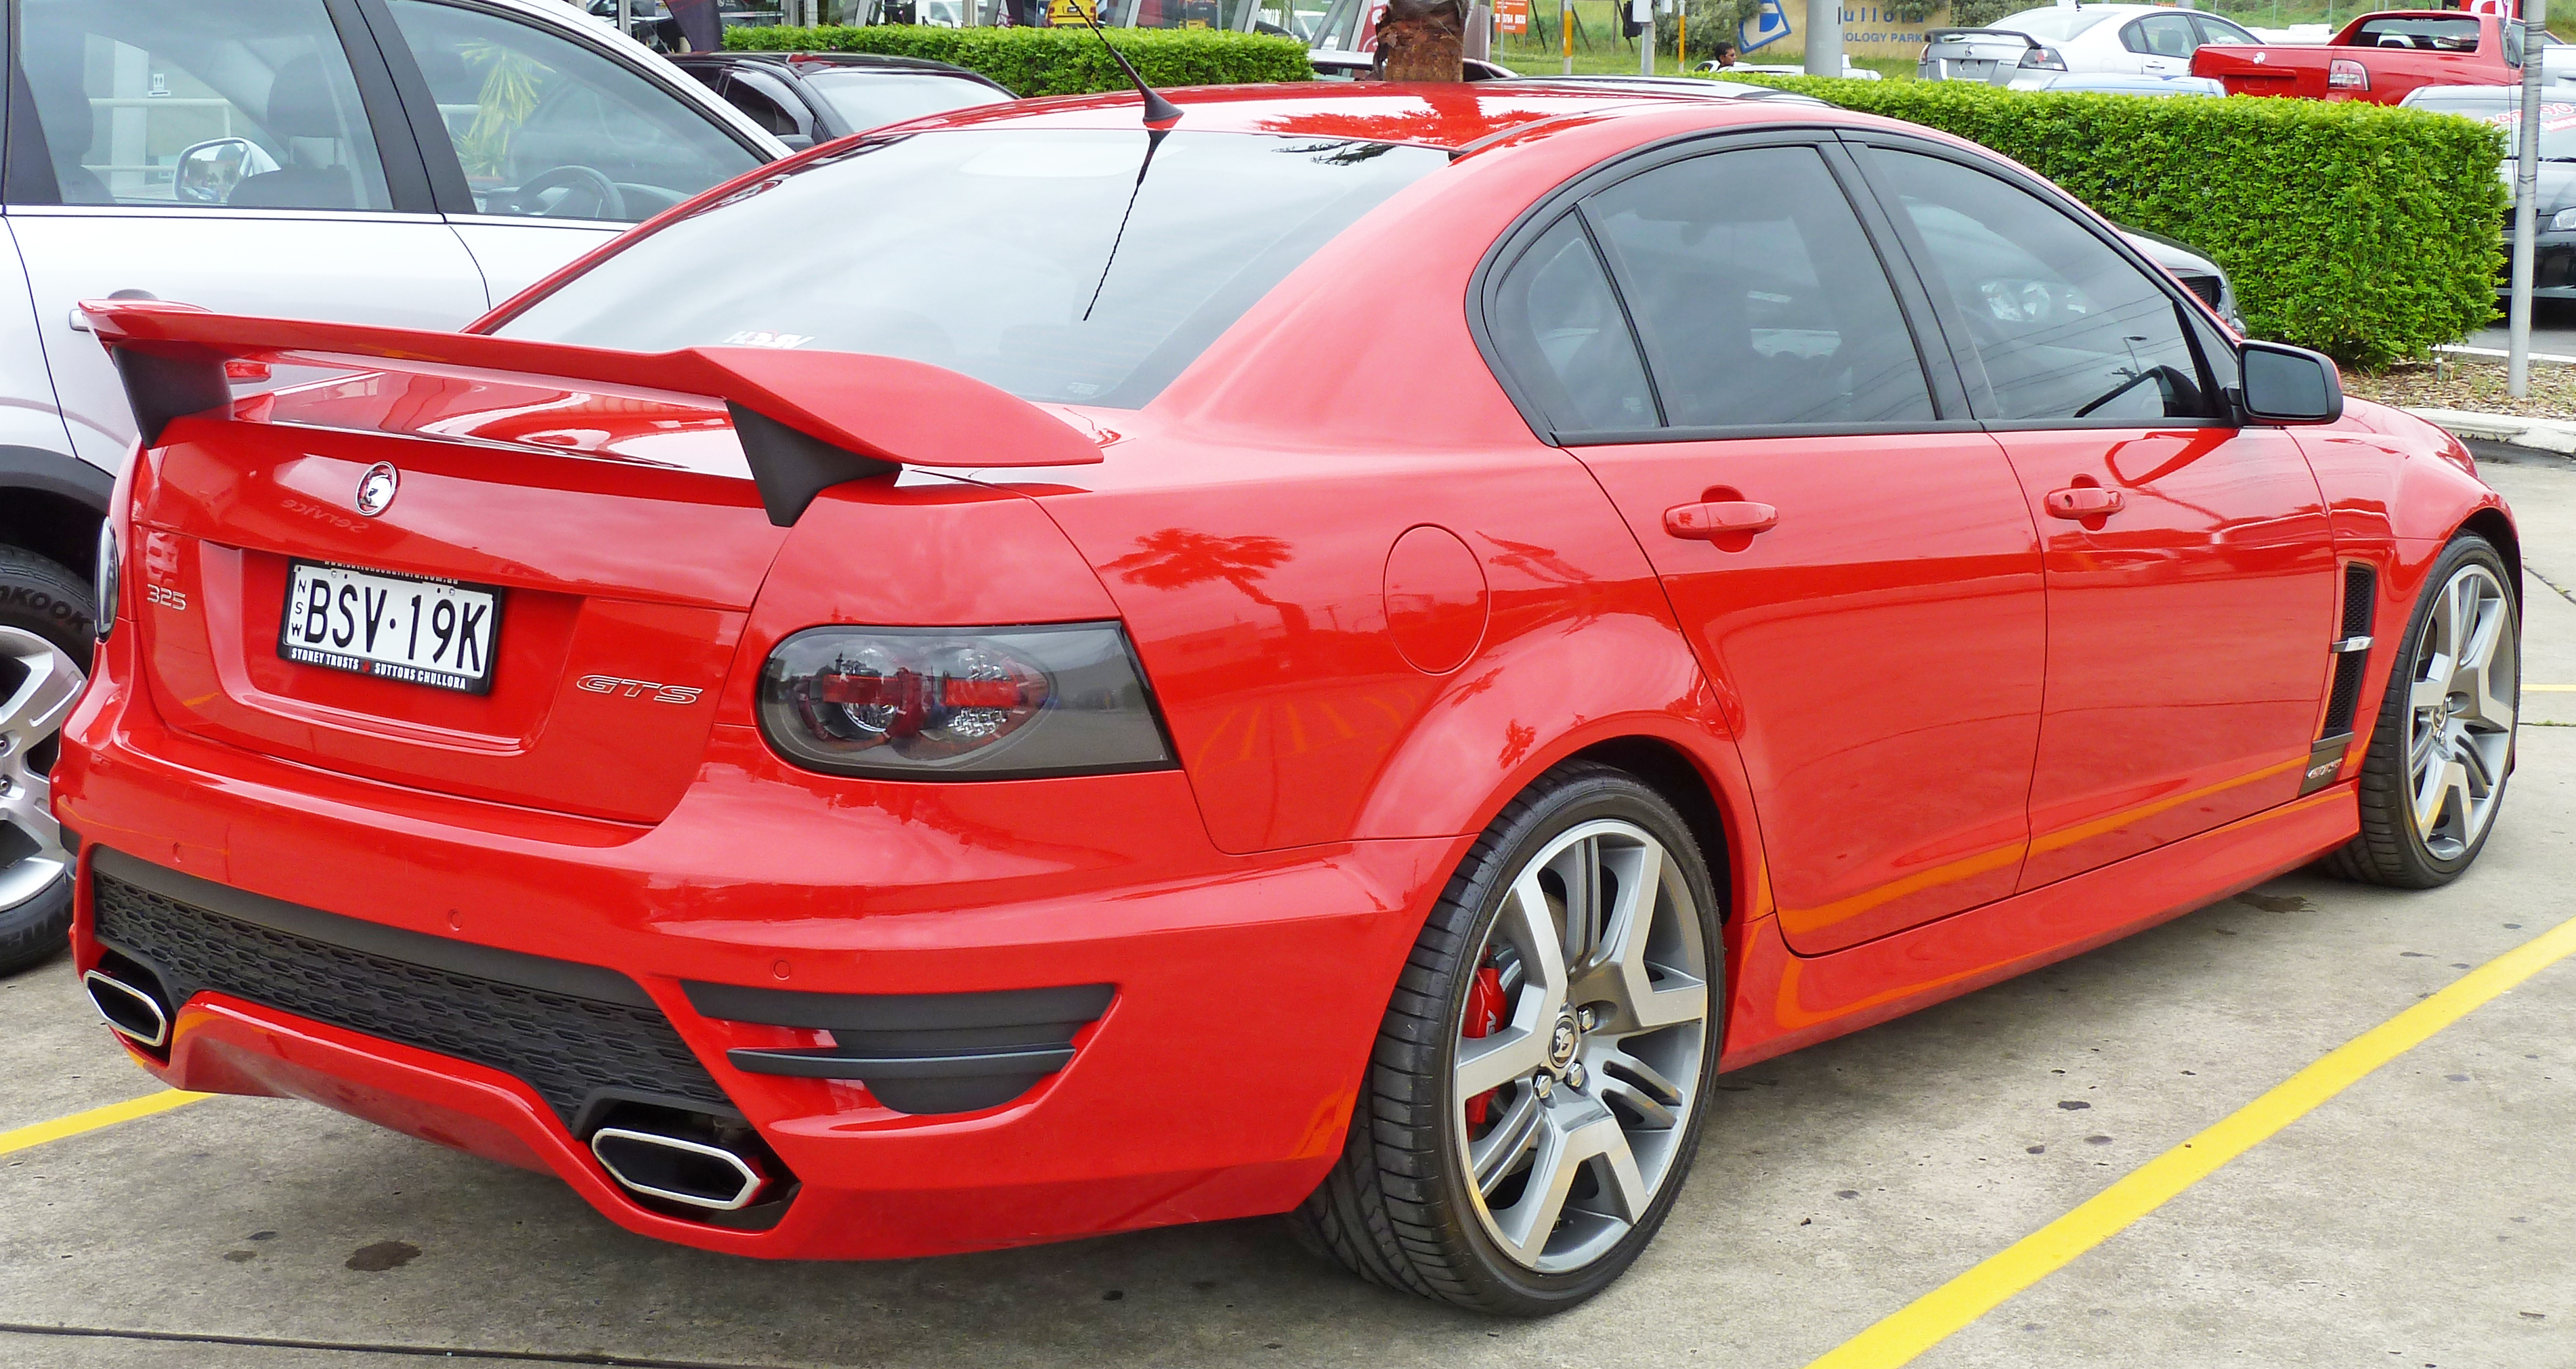 file2010 hsv gts e series 2 my10 sedan 02jpg